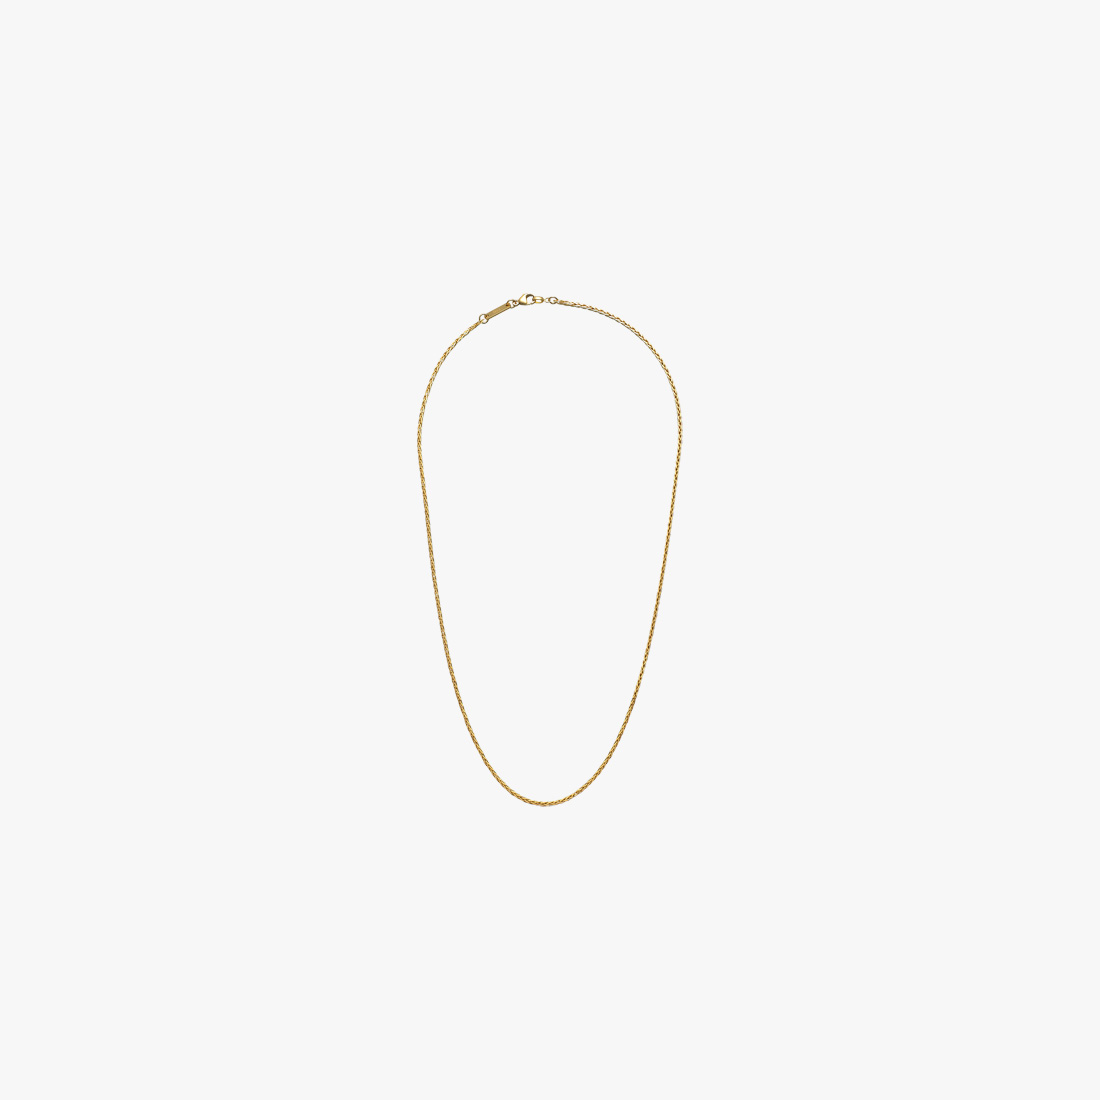 GOLD CHAIN 45cm, , large